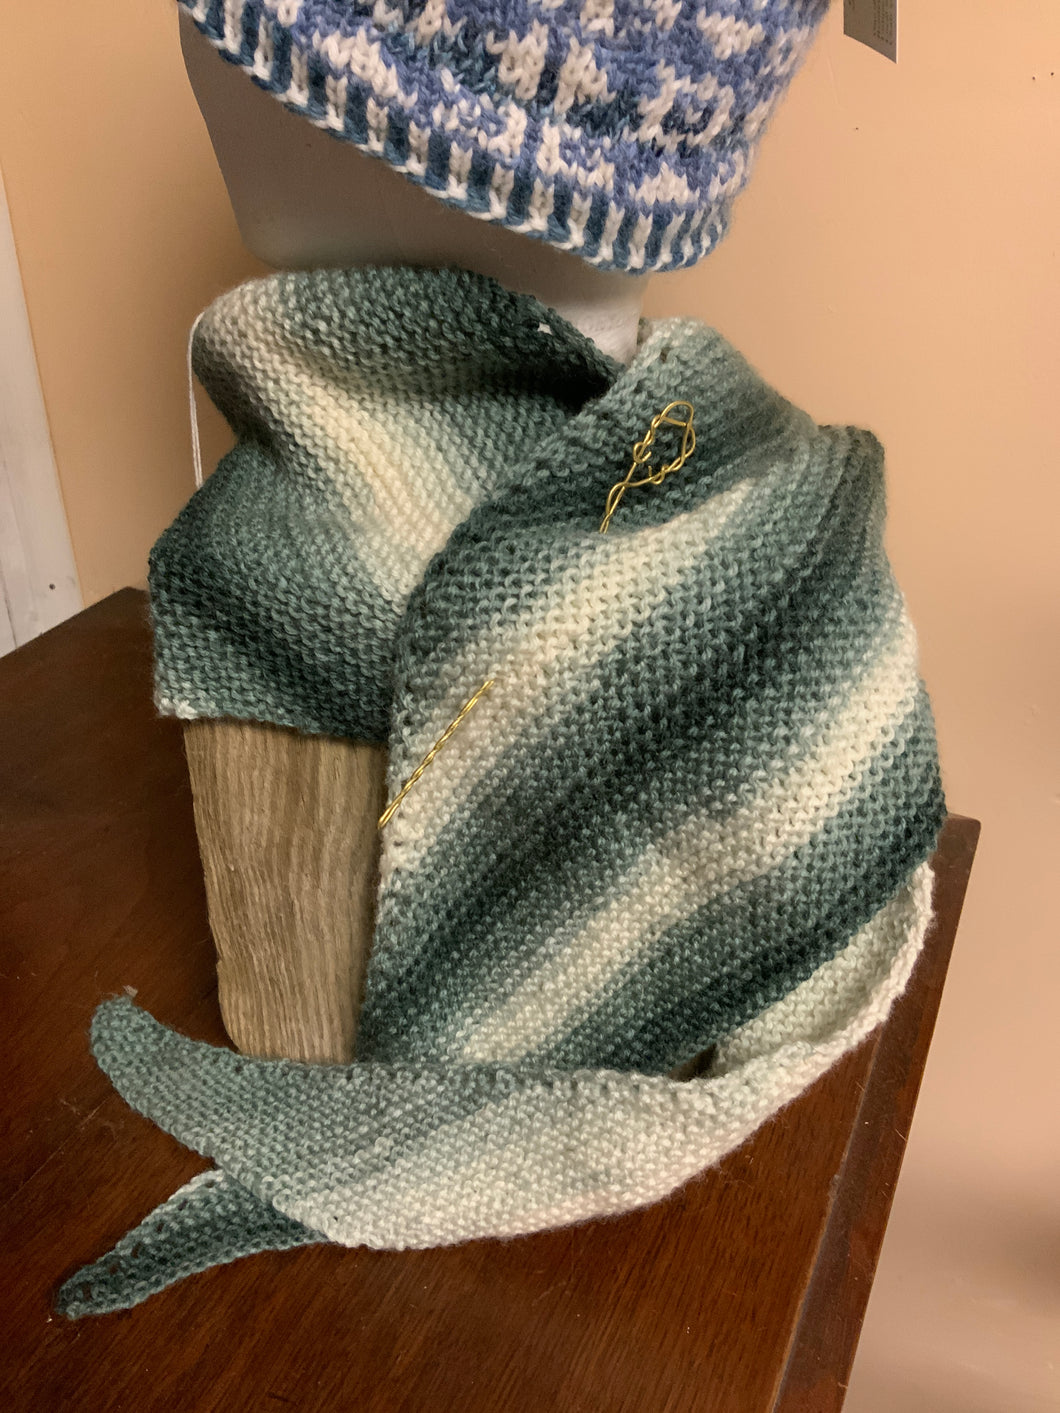 Shades of green and cream hand-knit shawl, with brass pin